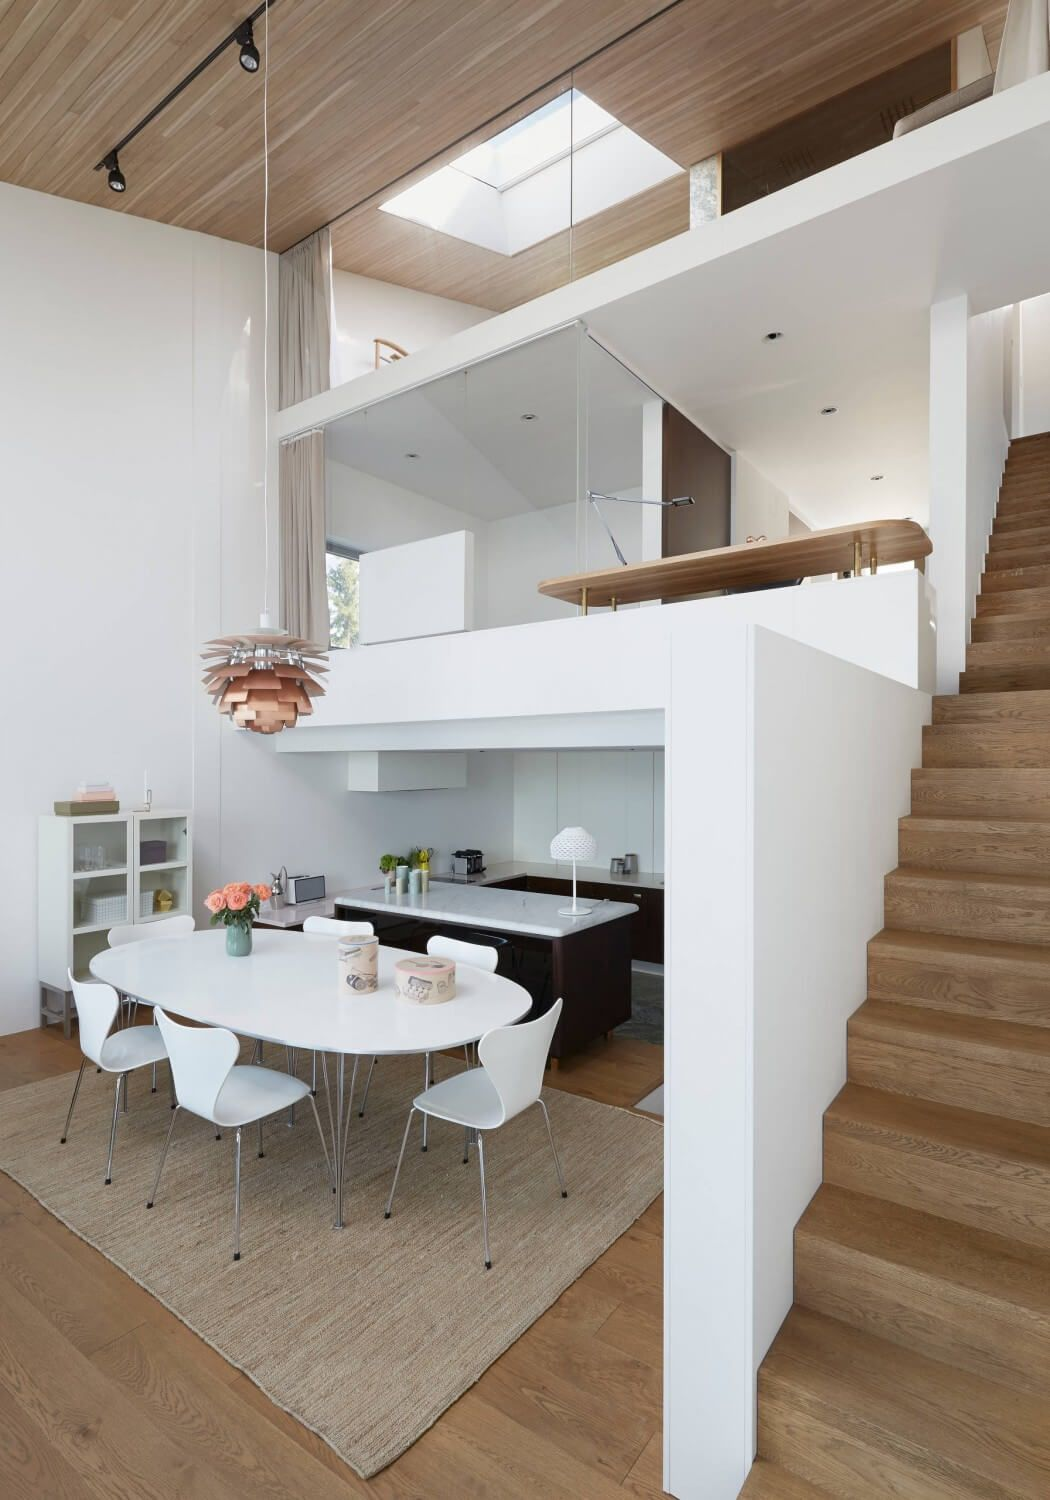 Internal Affairs Interior Designers: Cone House By Trigueiros Architecture